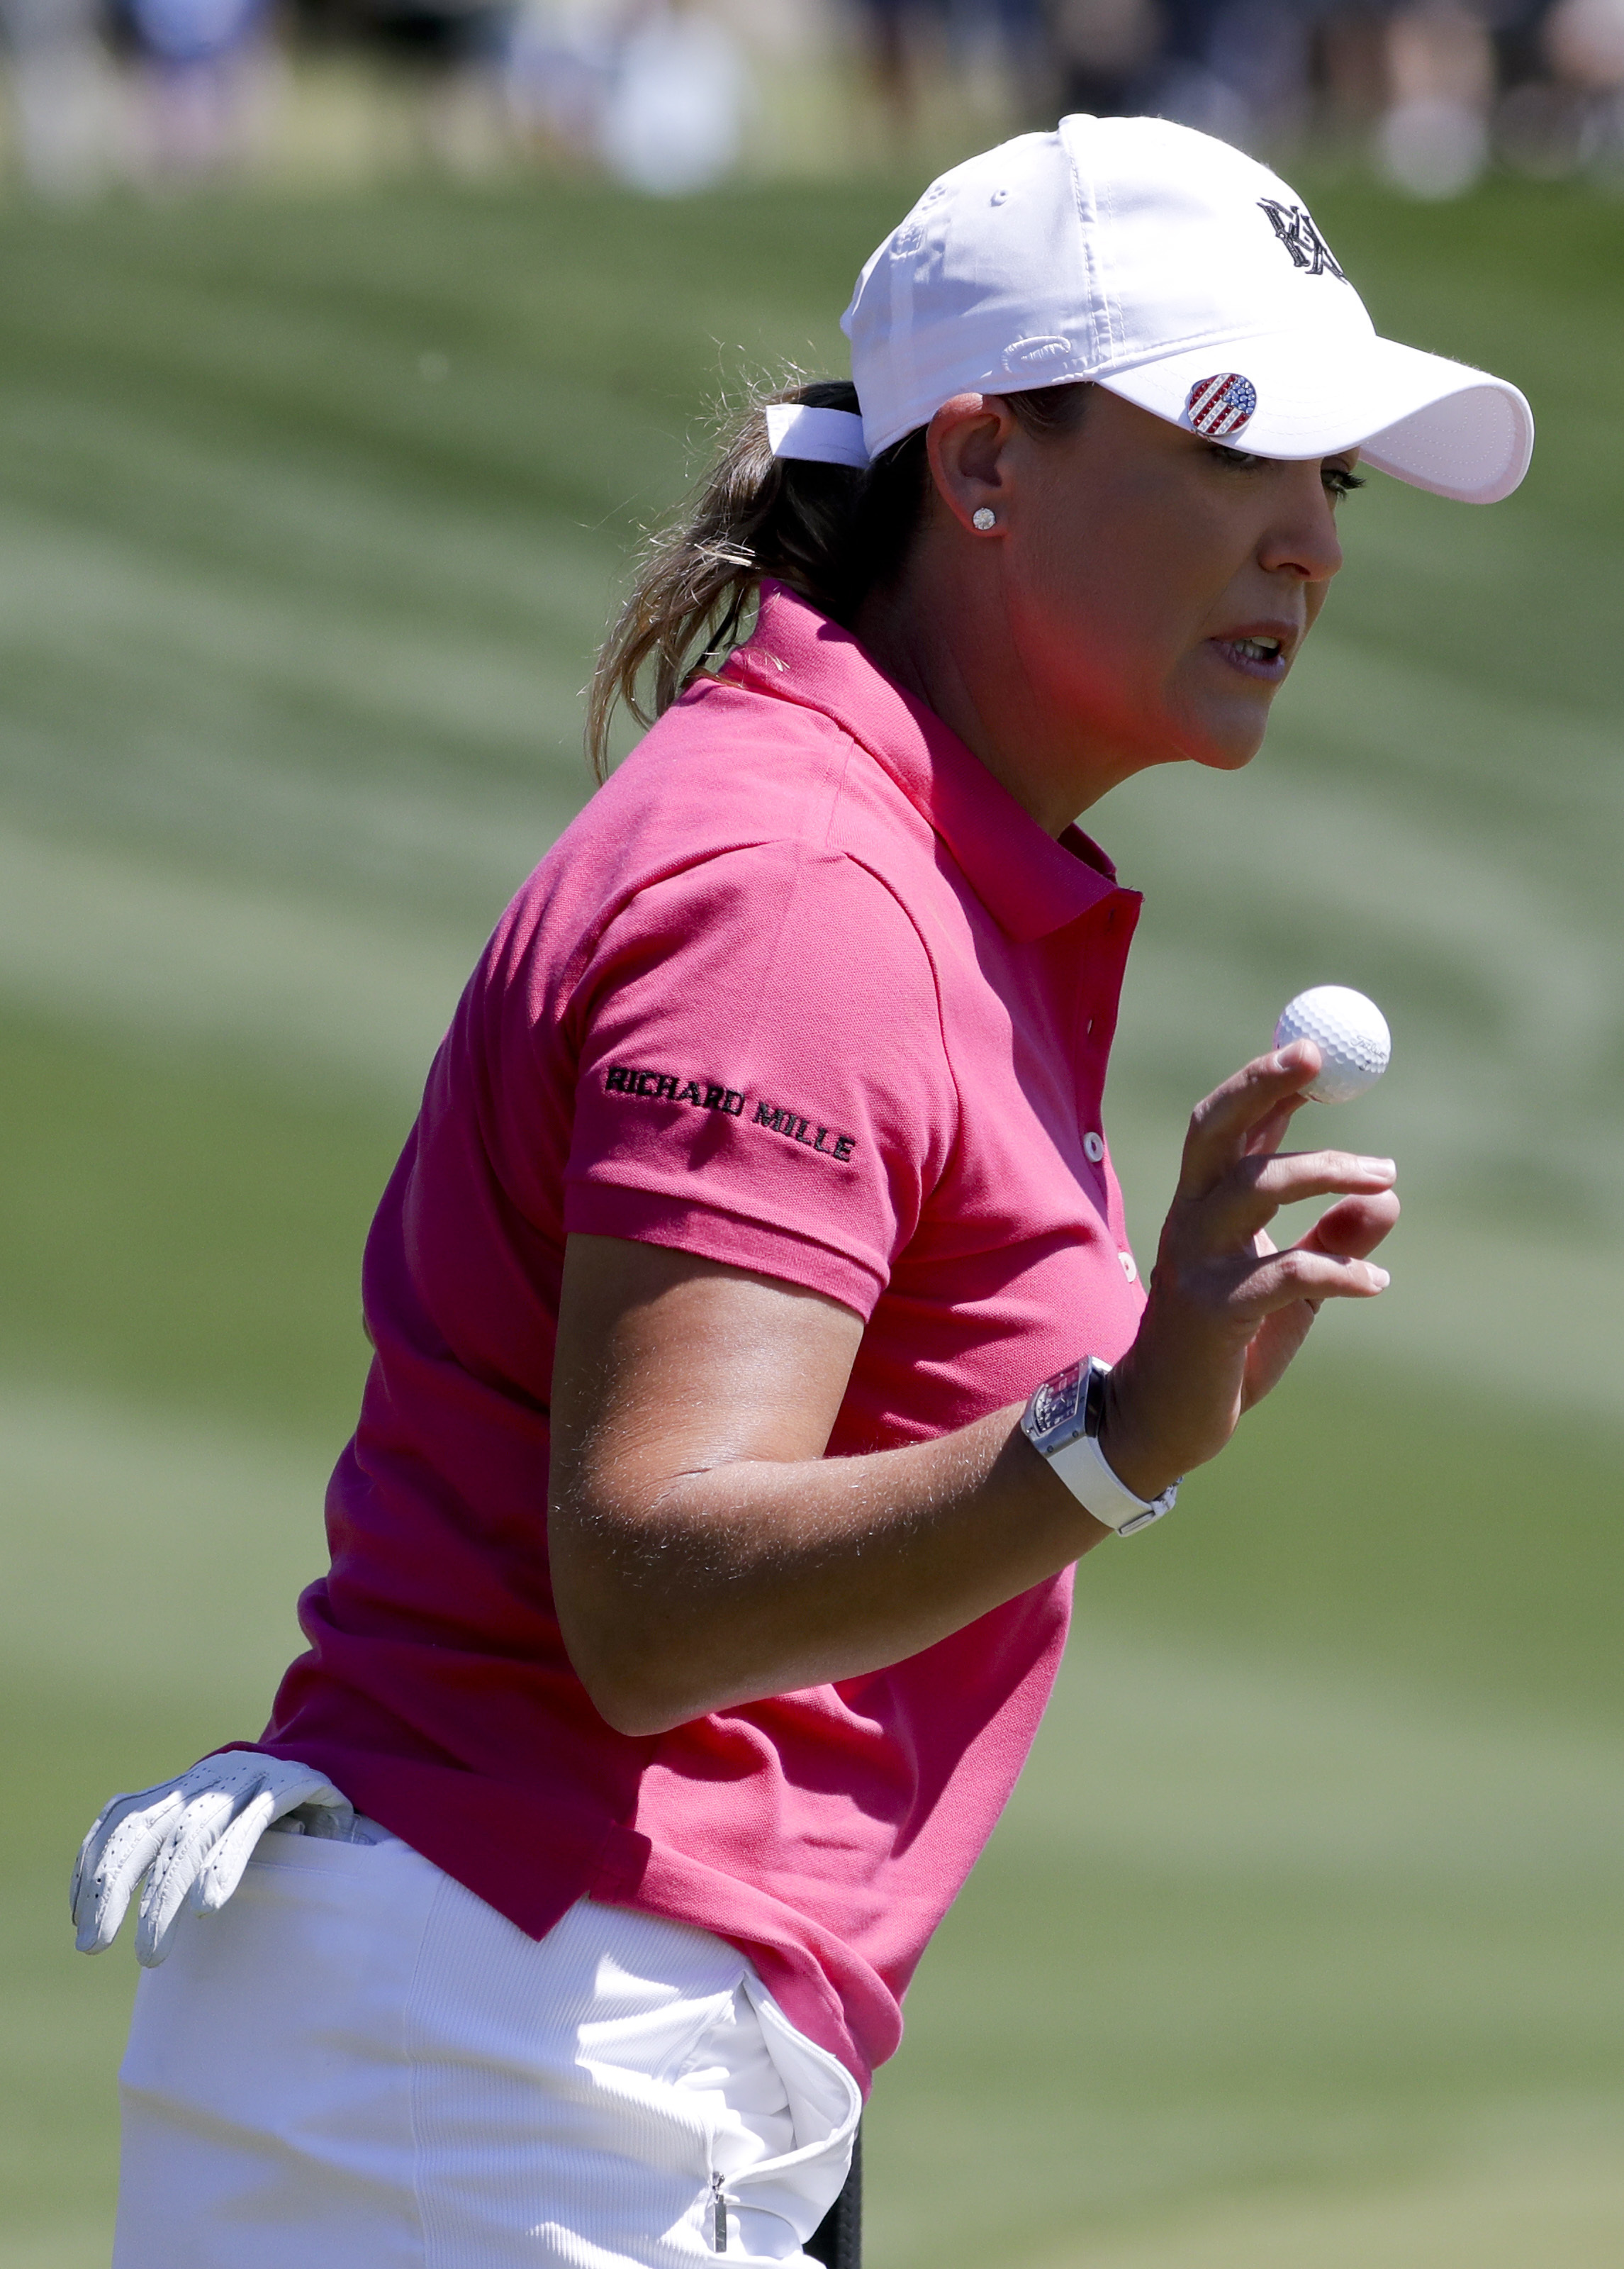 Cristie Kerr waves after making a putt on the first hole during the third round of the LPGA Tour's ANA Inspiration golf tournament at Mission Hills Country Club on Saturday, April 1, 2017, in Rancho Mirage, Calif. (AP Photo/Chris Carlson)